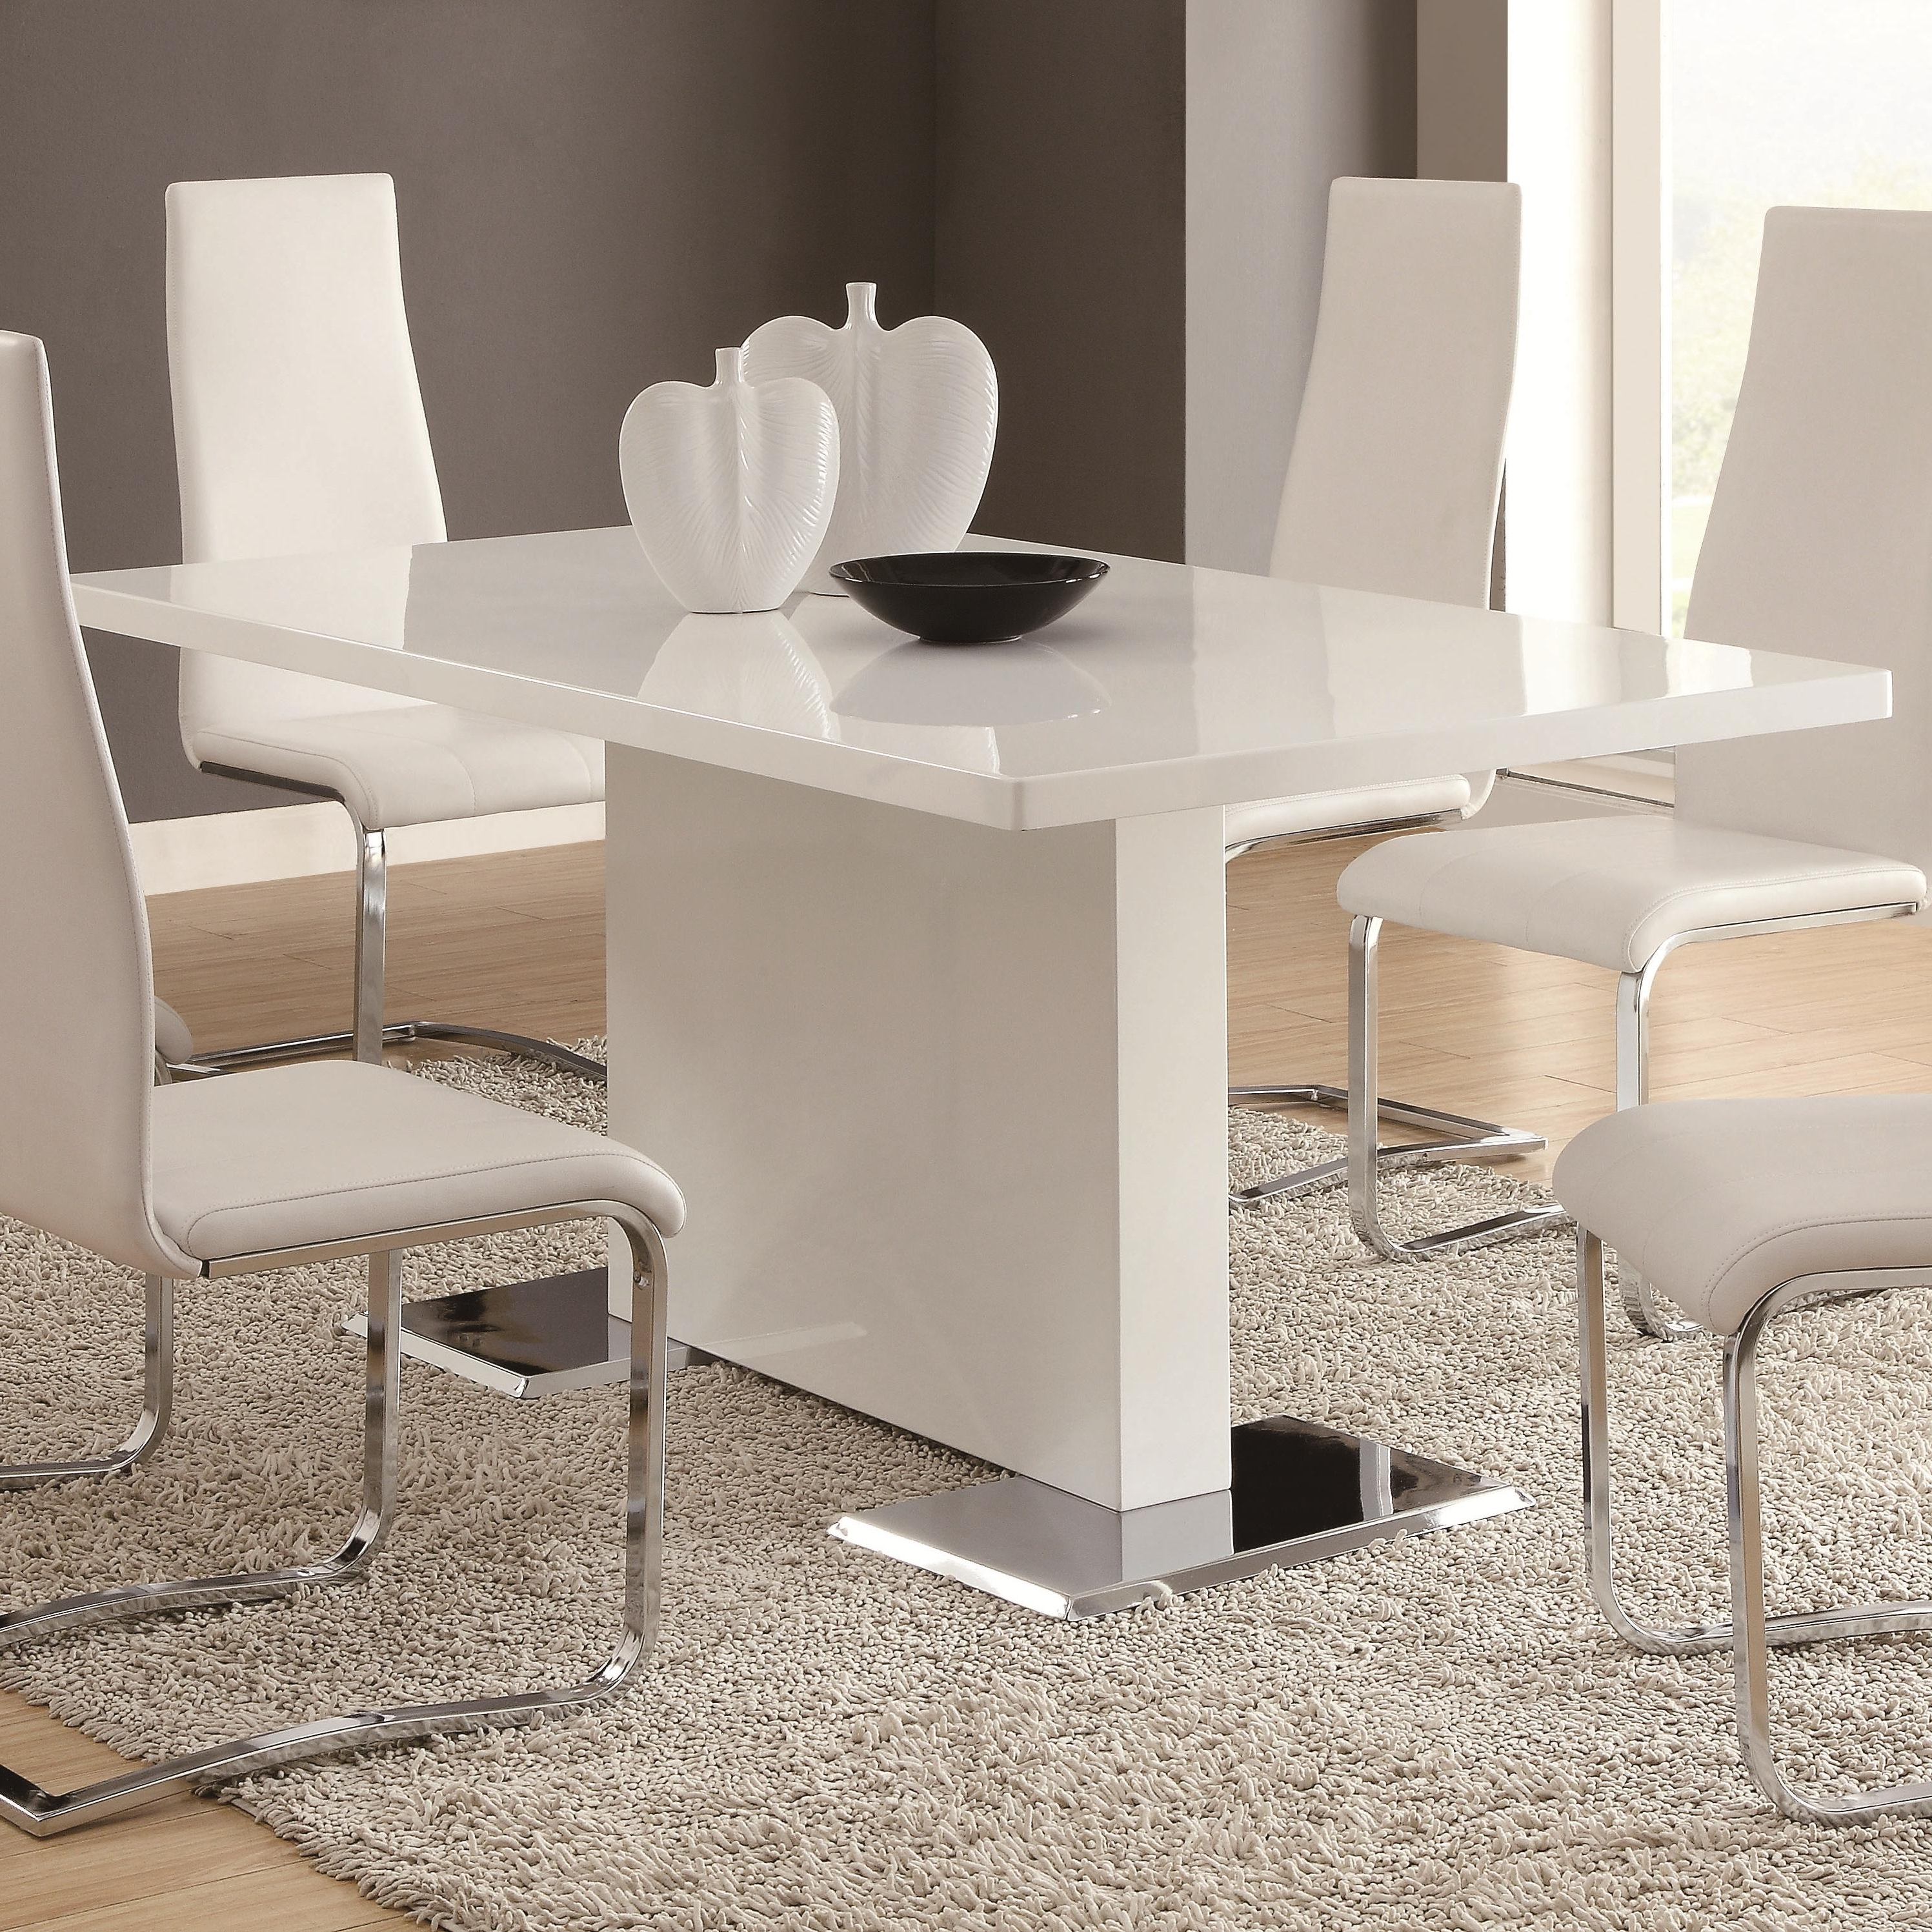 Coaster Modern Dining 102310 White Dining Table With Chrome Metal Pertaining To Well Known Modern Dining Room Sets (Gallery 2 of 25)